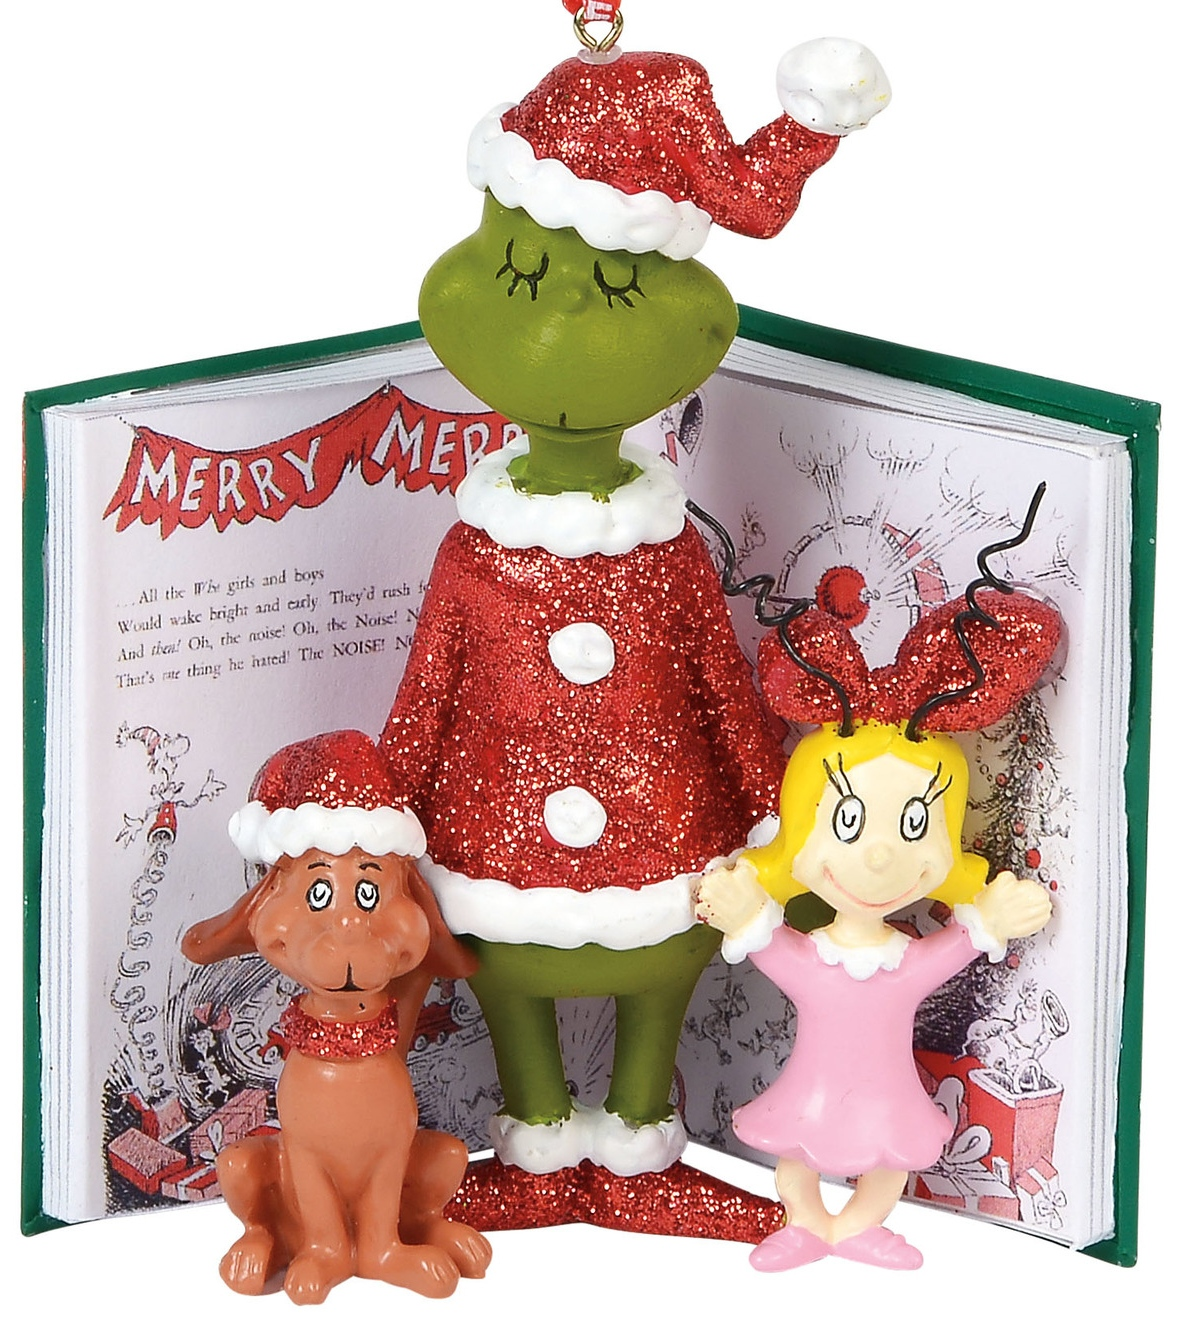 Grinch by Department 56 6000301 Grinch Cindy and Max Book Ornament